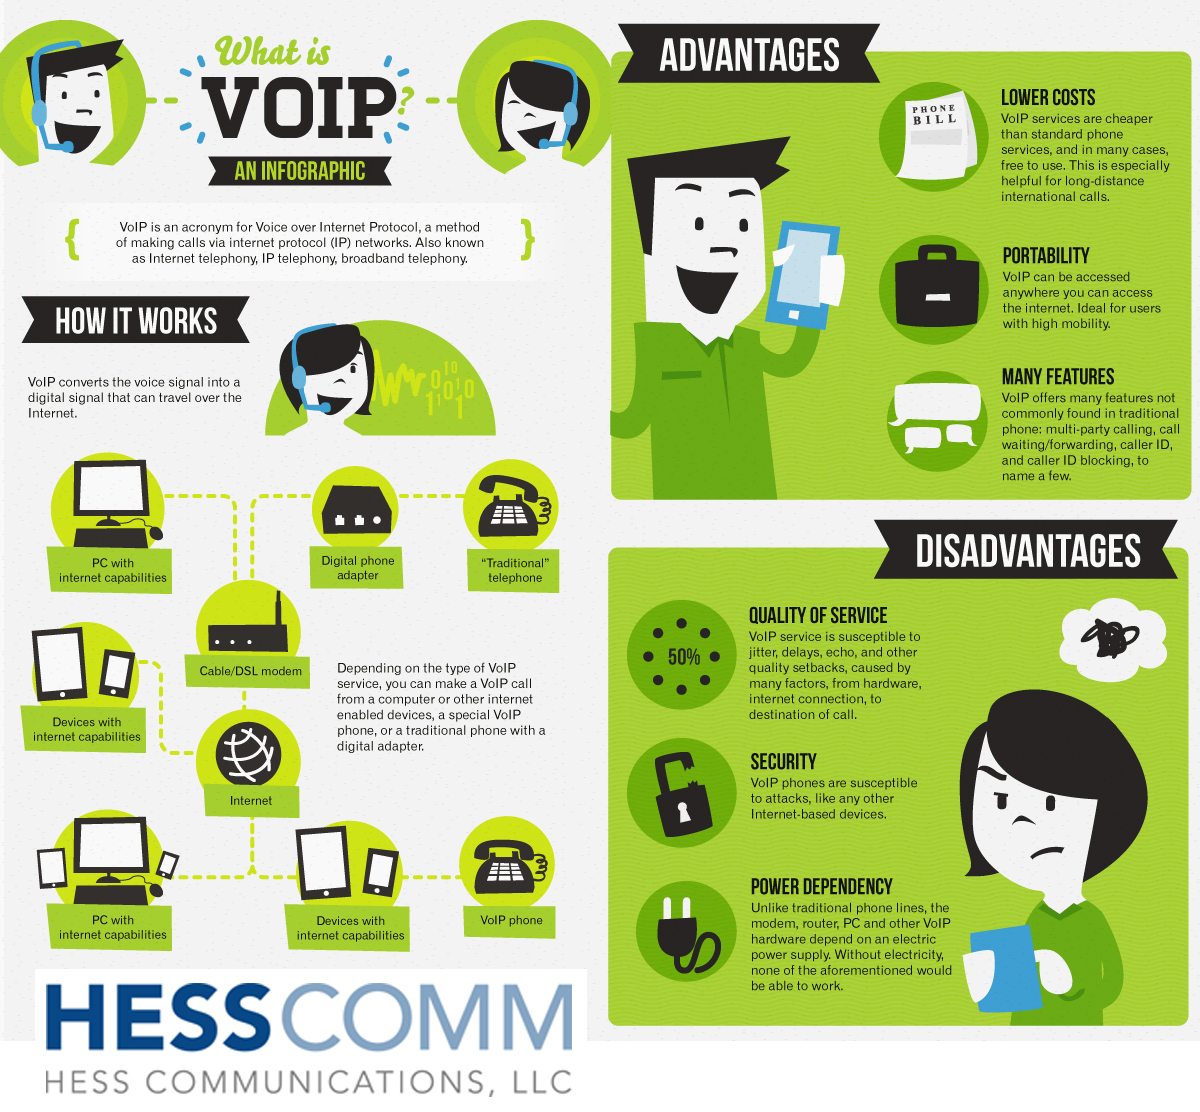 Hess Communications Llc What Is Voip